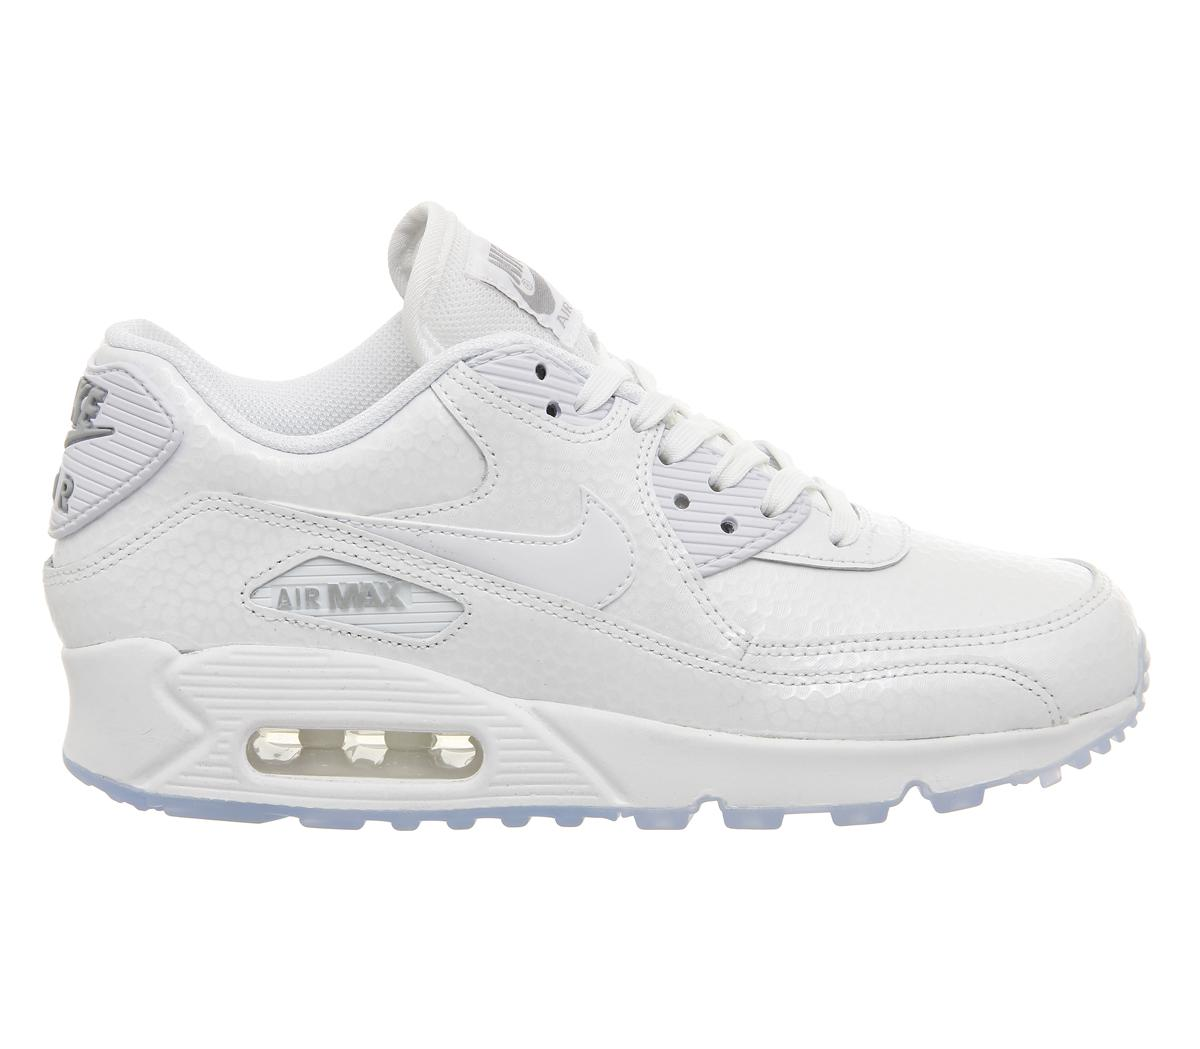 57d6e61f88 Nike Pearl Air Max 90 Lizard-Effect Low-Top Sneakers in White - Lyst